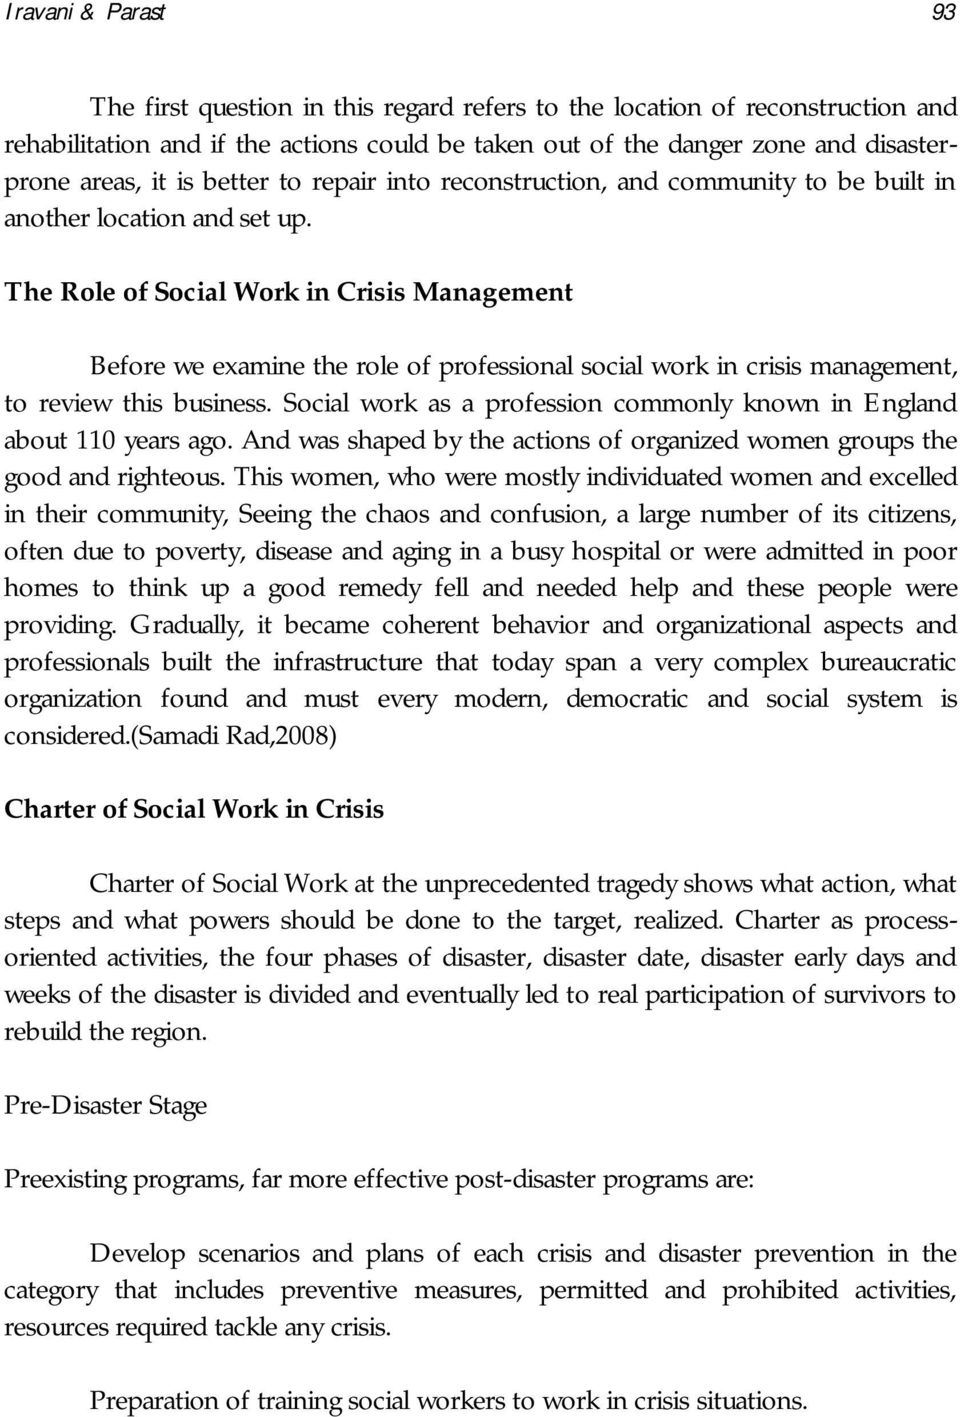 Examine the Role of Social Workers in Crisis Management - PDF